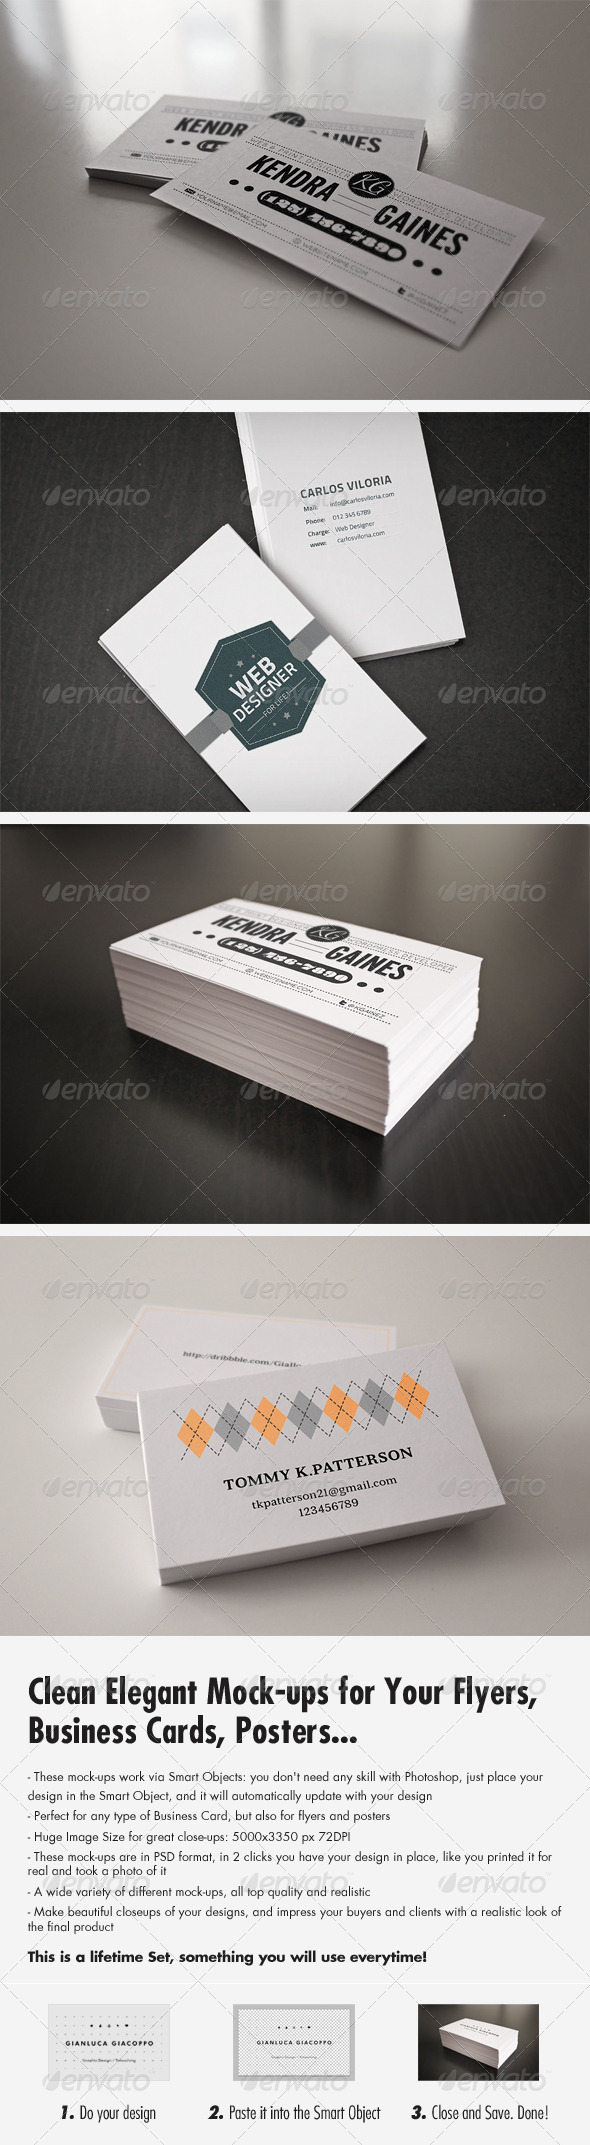 Flyer/Business Card Clean Realistic Mockups Set 1  - Business Cards Print